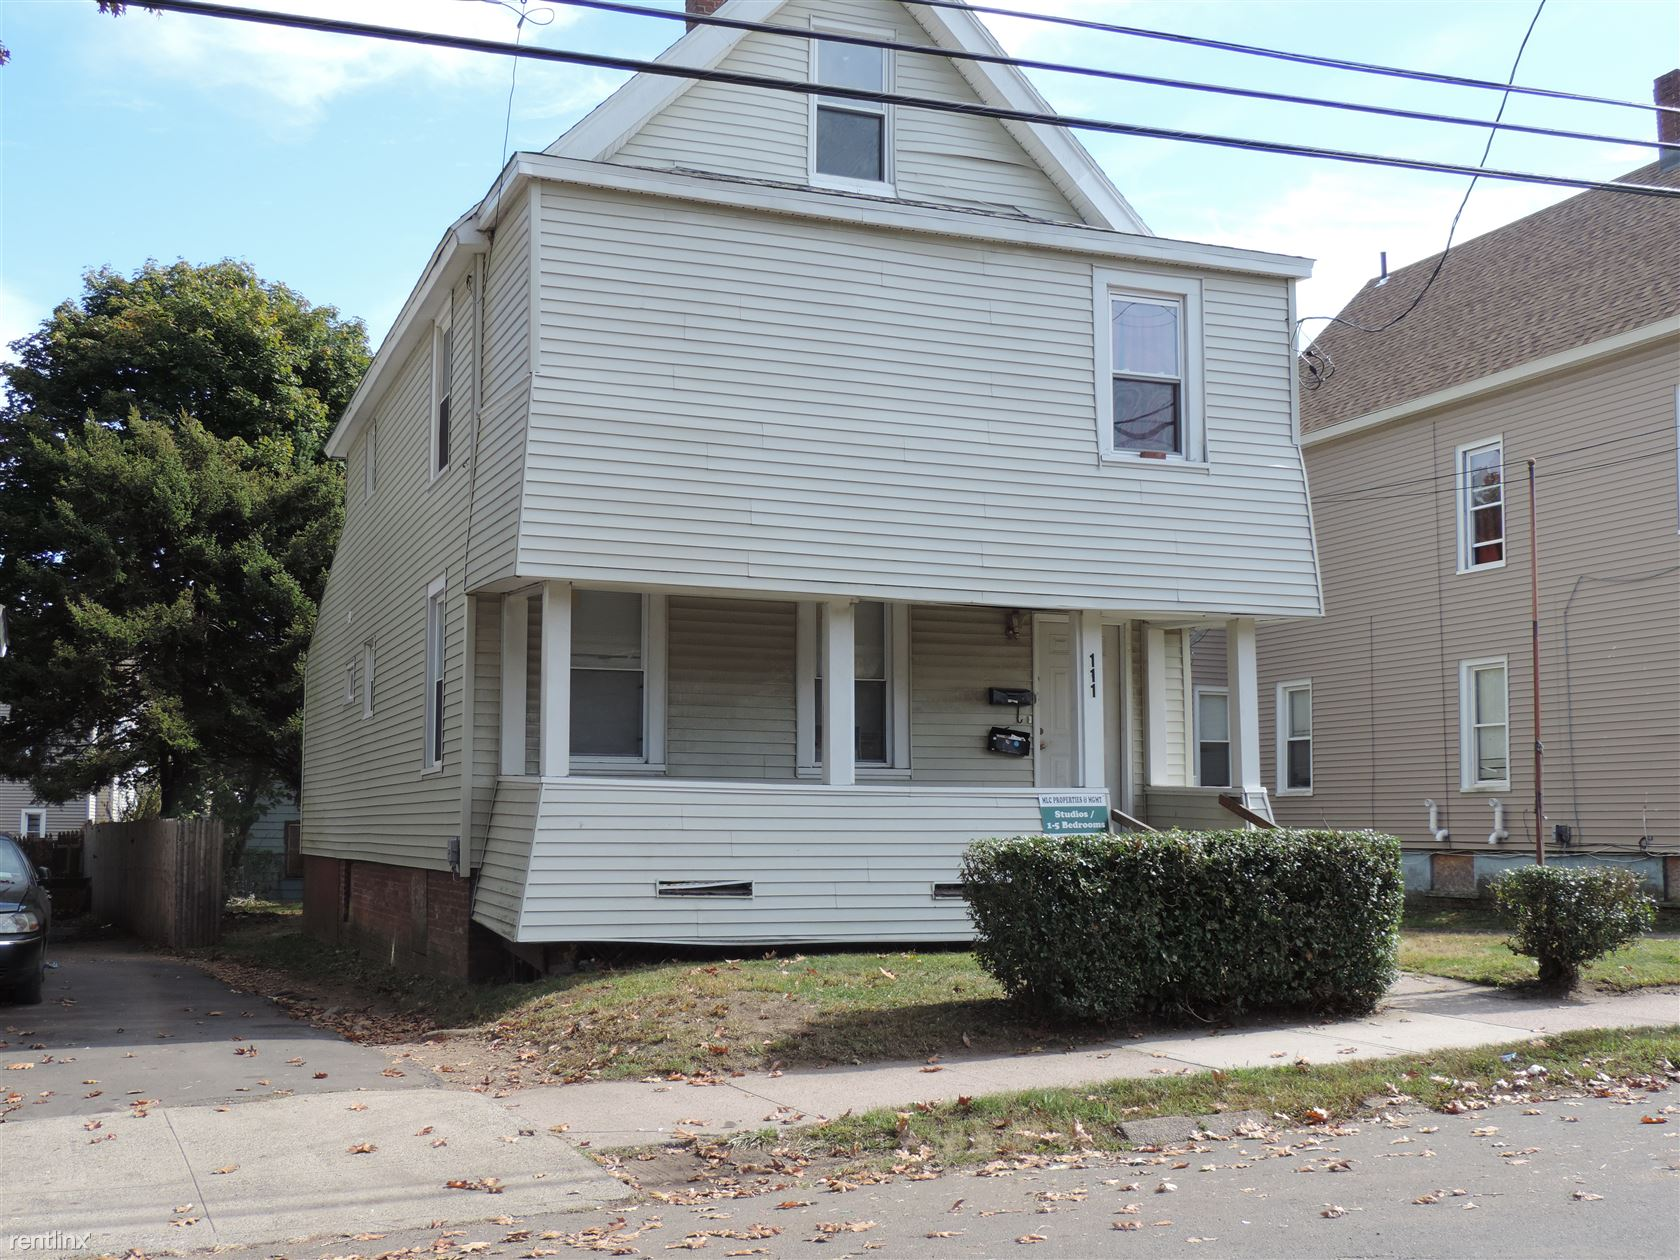 111 Fairmont Ave Fl 2, New Haven, CT - $1,900 USD/ month